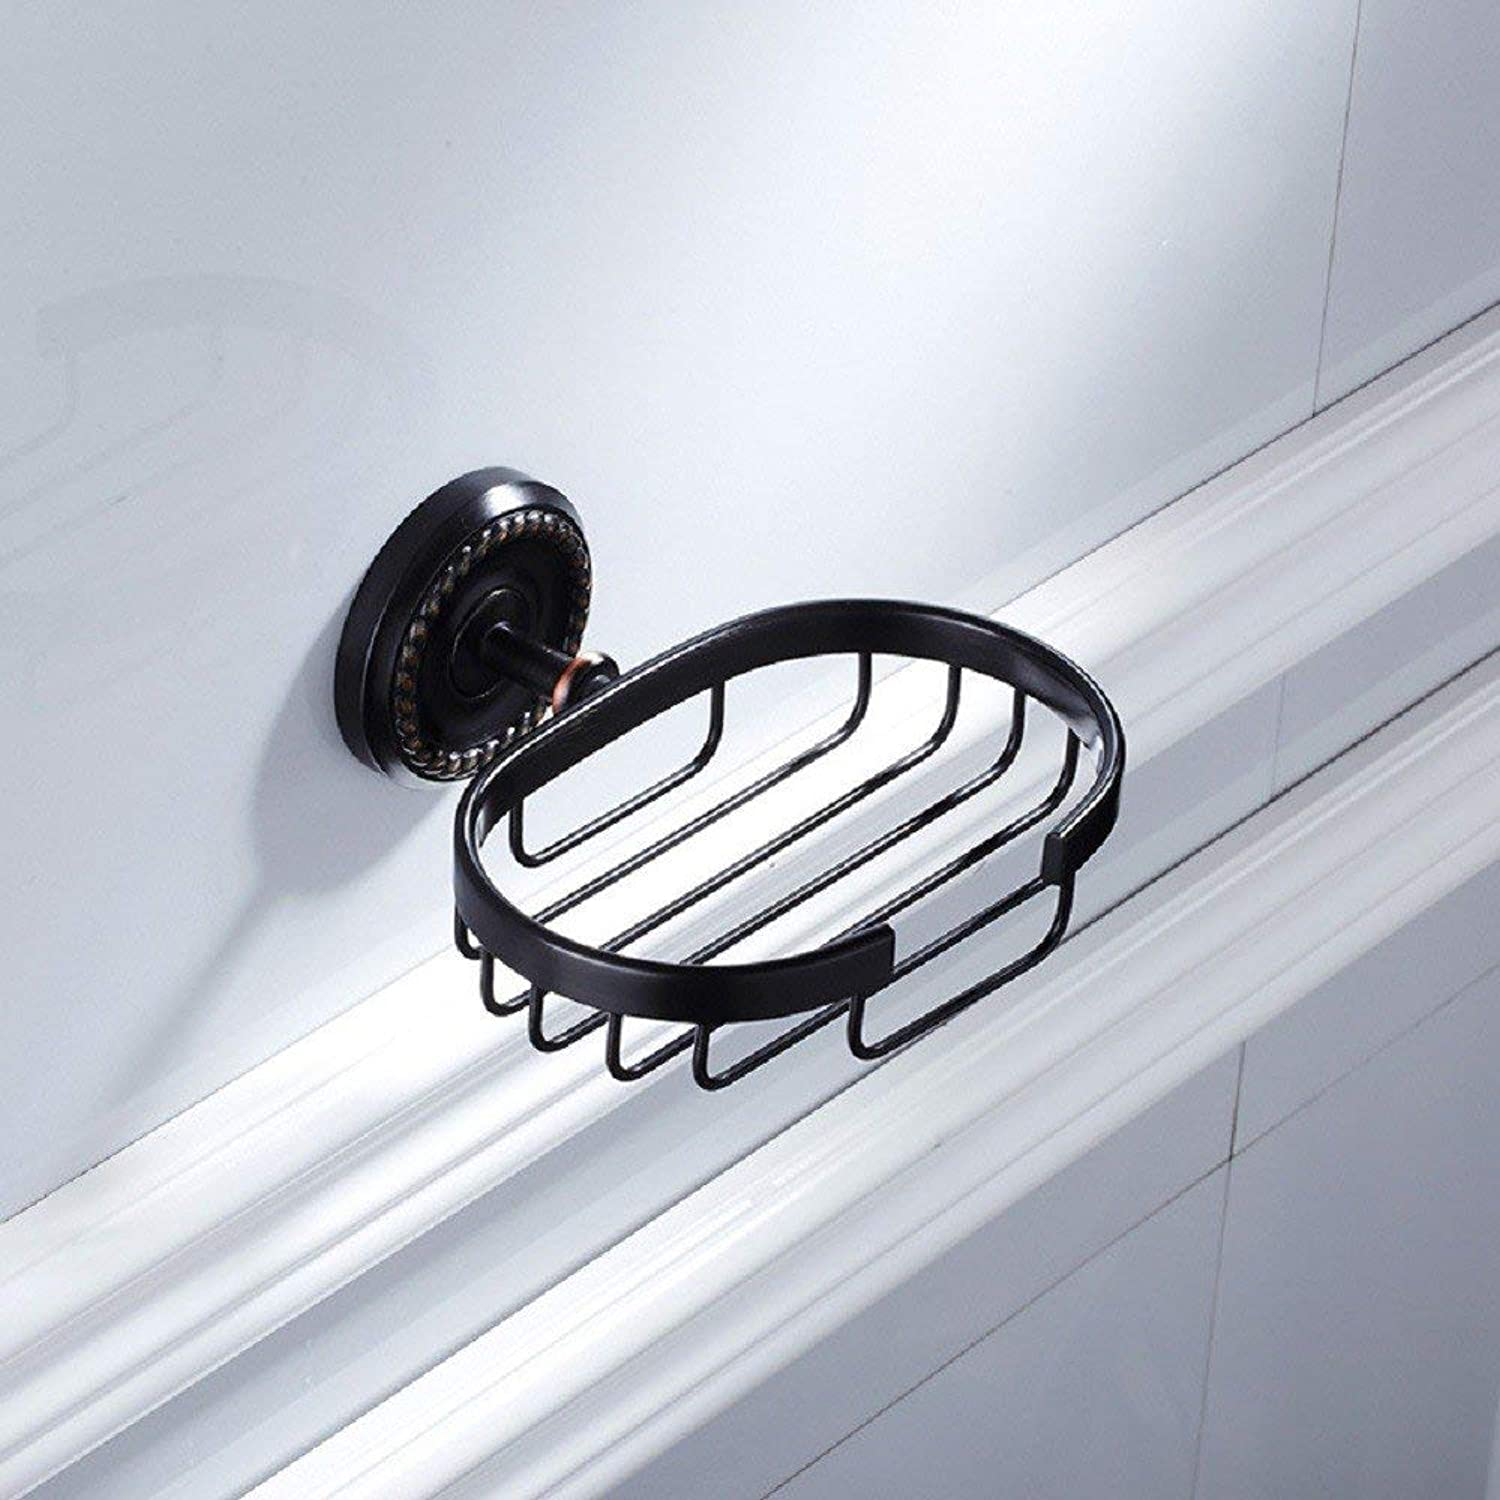 Towel Rack Combination Suit Black Antique Towel Rack Full Copper Combination Suit Towel Rack Bathroom Towel bar Wall Hanging,Soap Network Bathroom Towel Shelf (color   Soap Network)